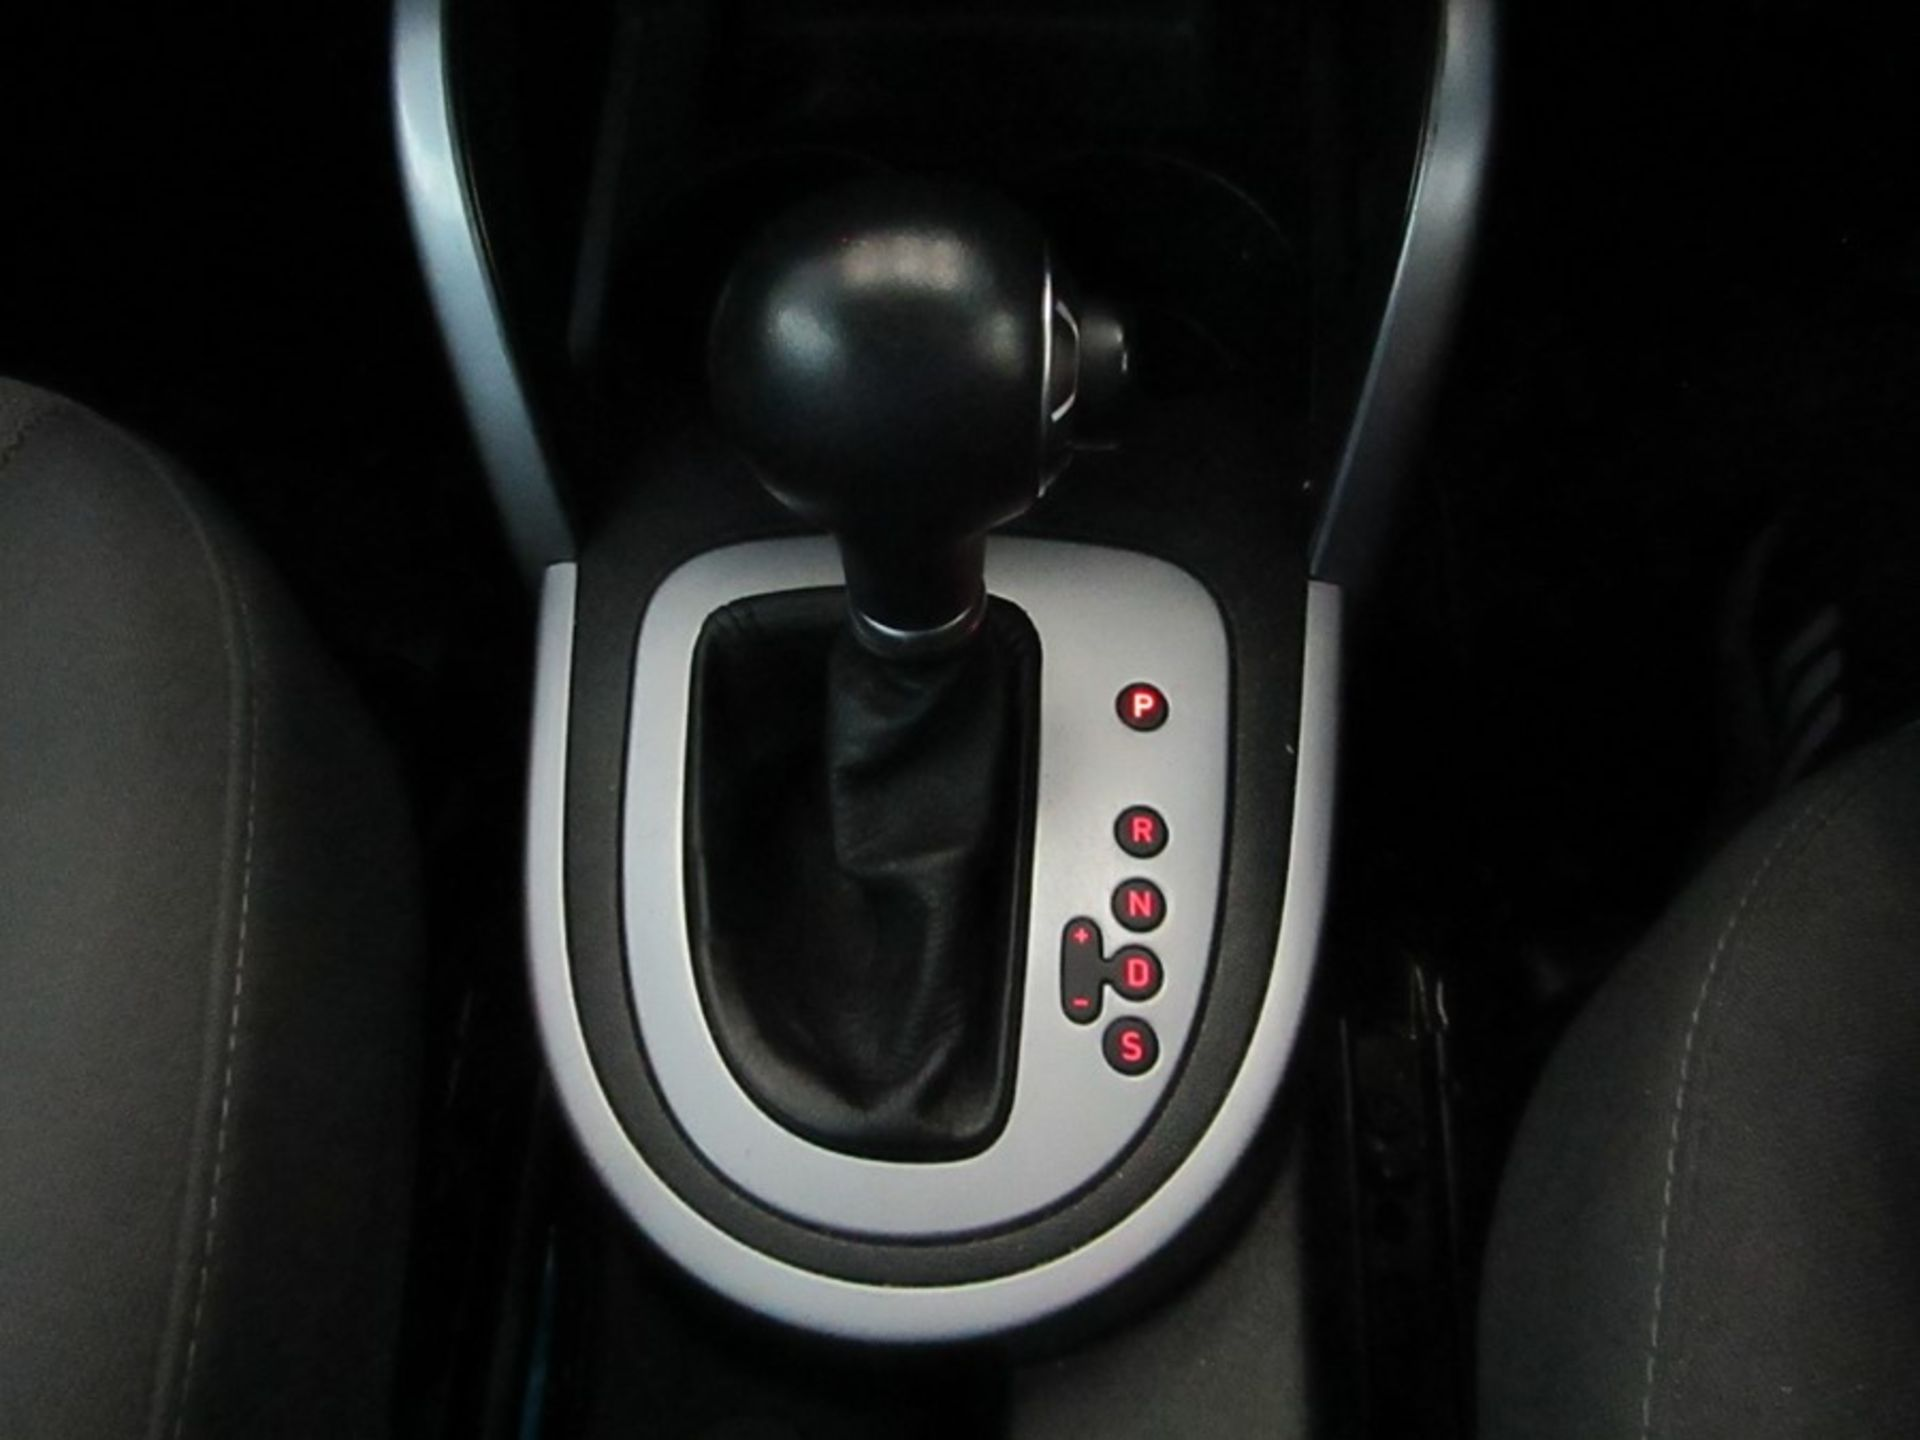 2011 Seat Althea SE CR TDI Auto, 1.6TDI, 47,678 miles (unchecked but appears to be inline with the - Image 16 of 17